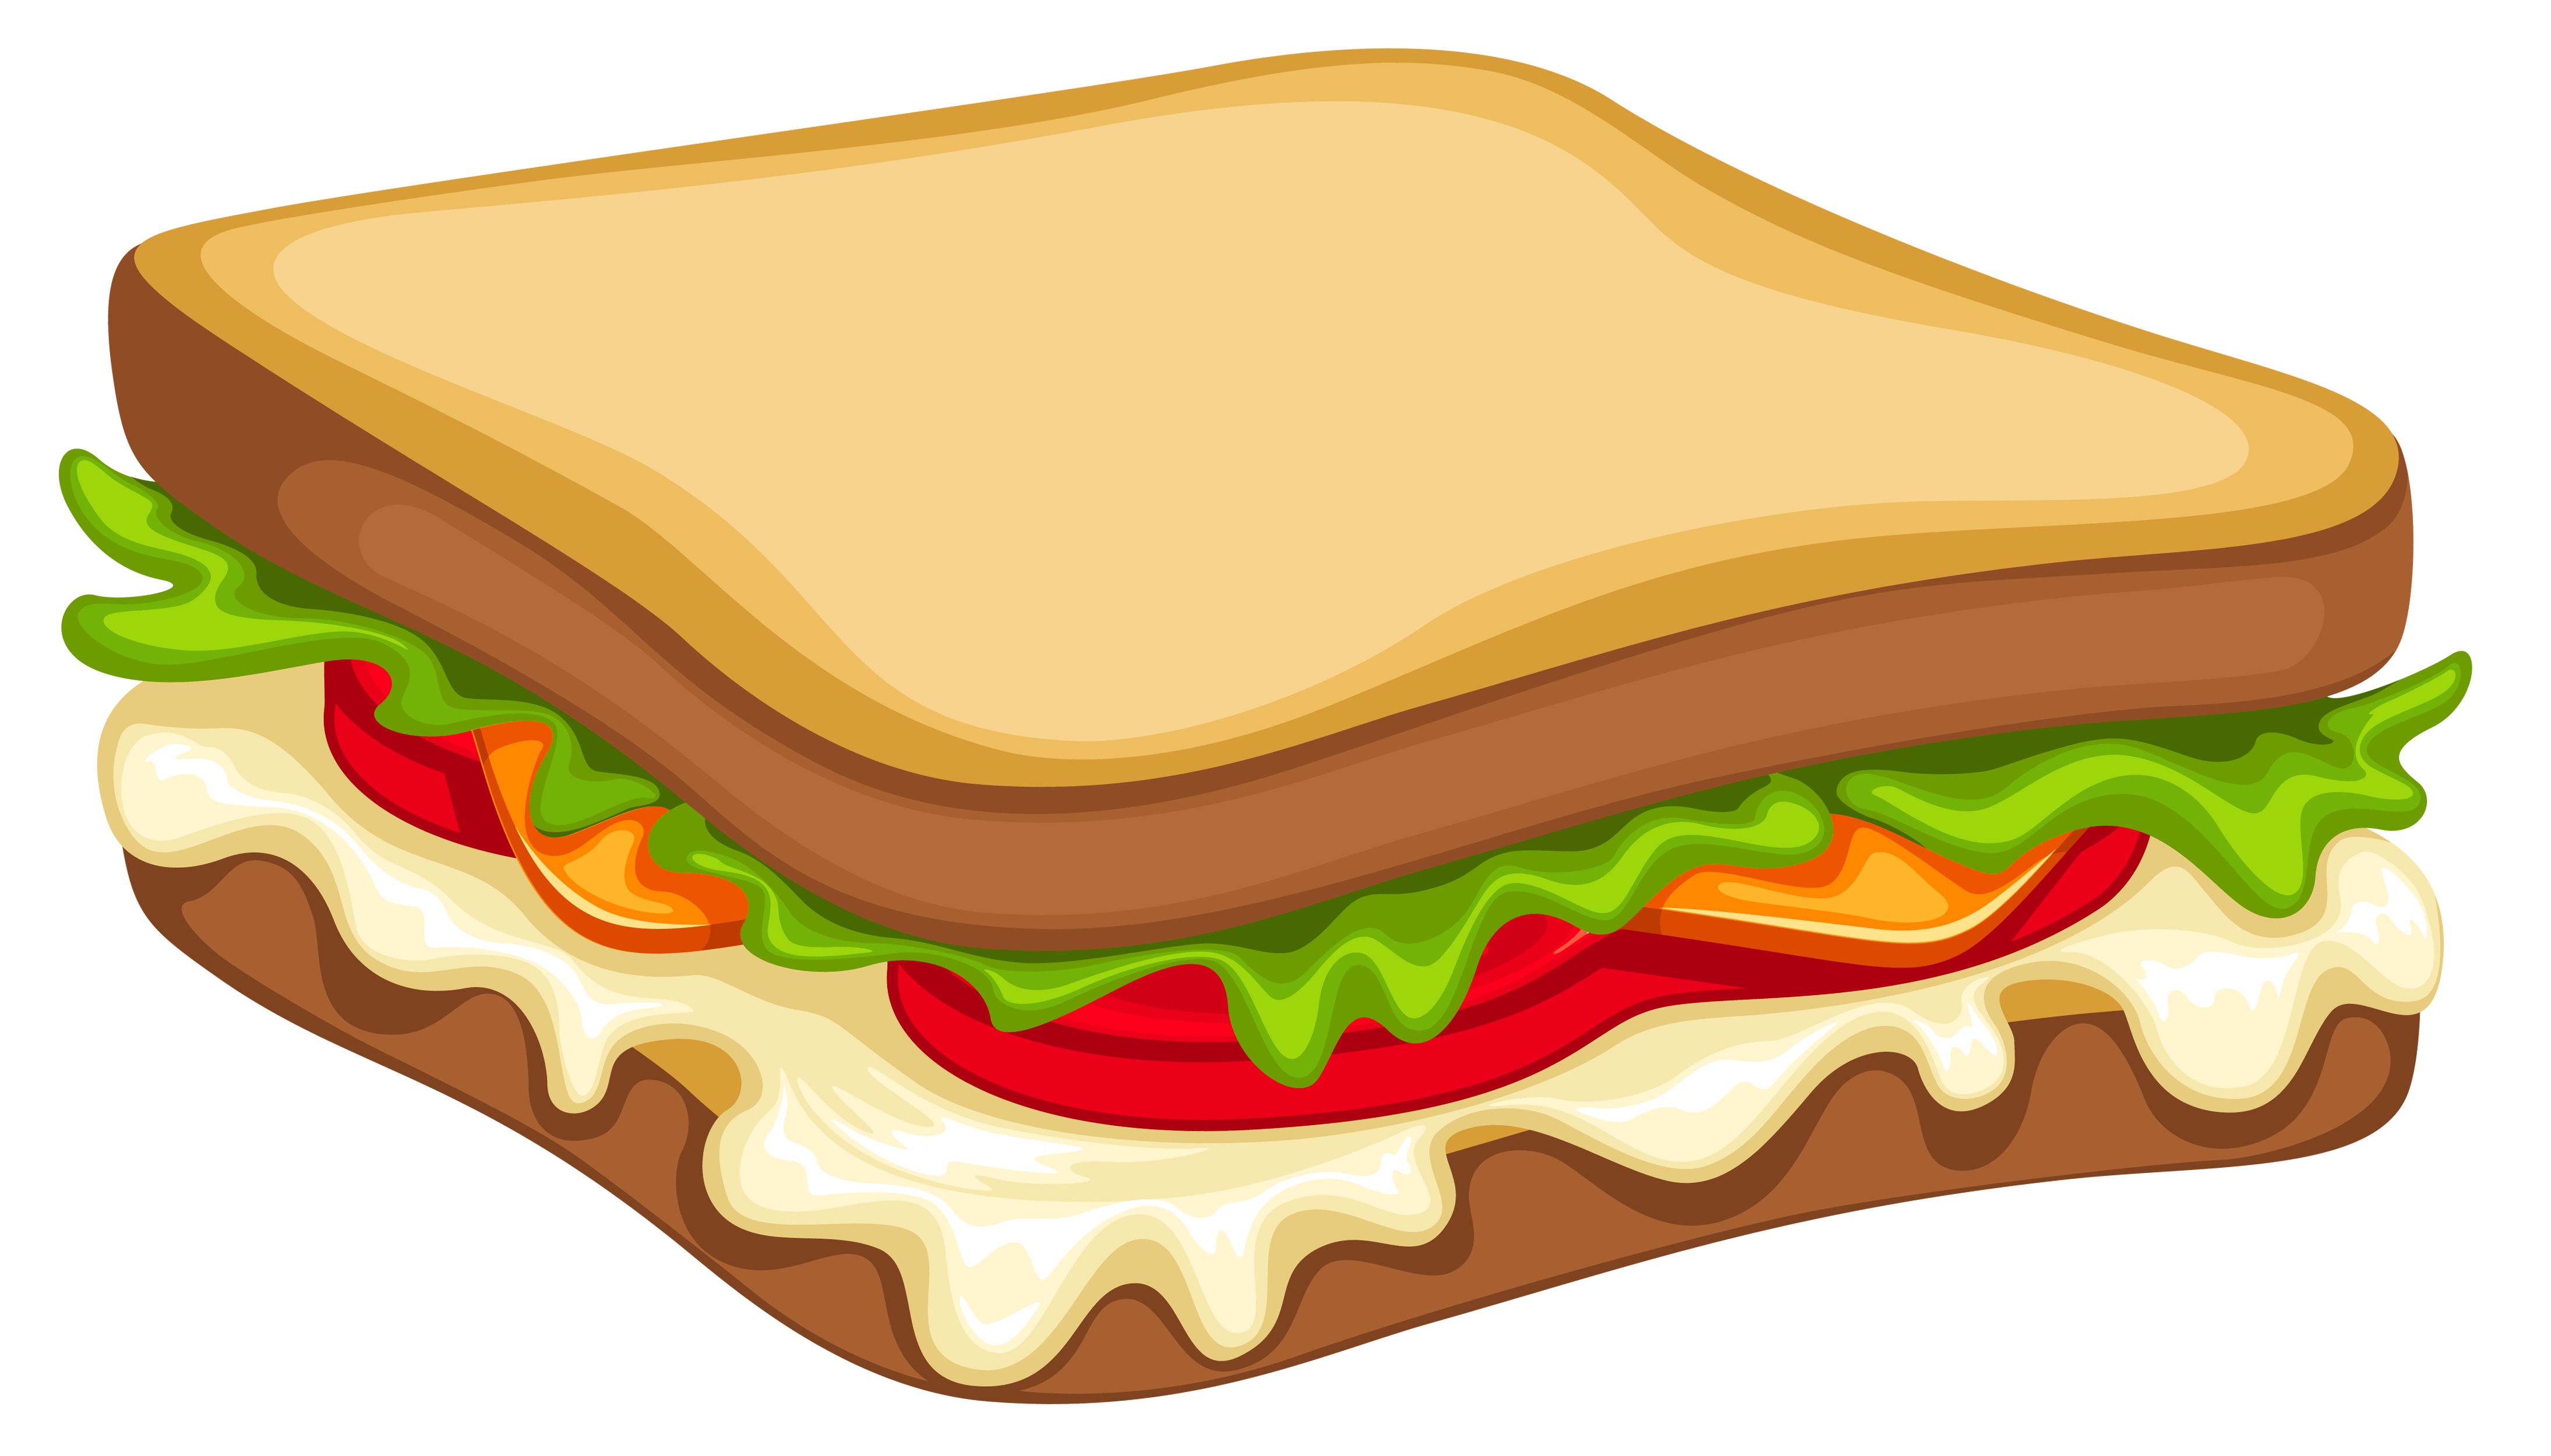 4379x2500 Food Clip Art Images Free Download